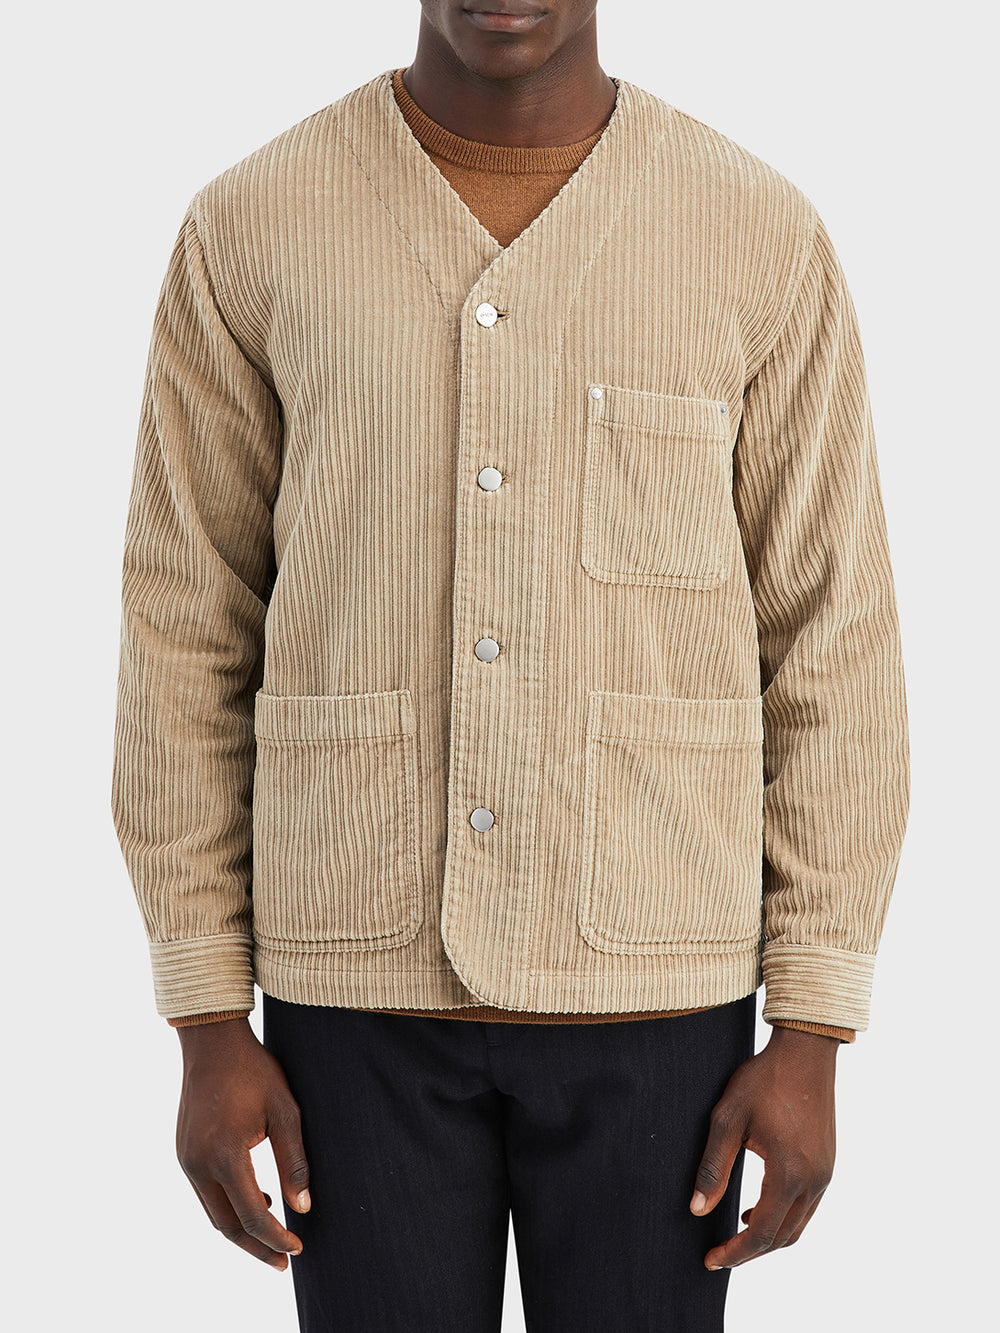 black friday deals ONS Clothing Men's jacket in KHAKI FISKE CORDUROY JACKET